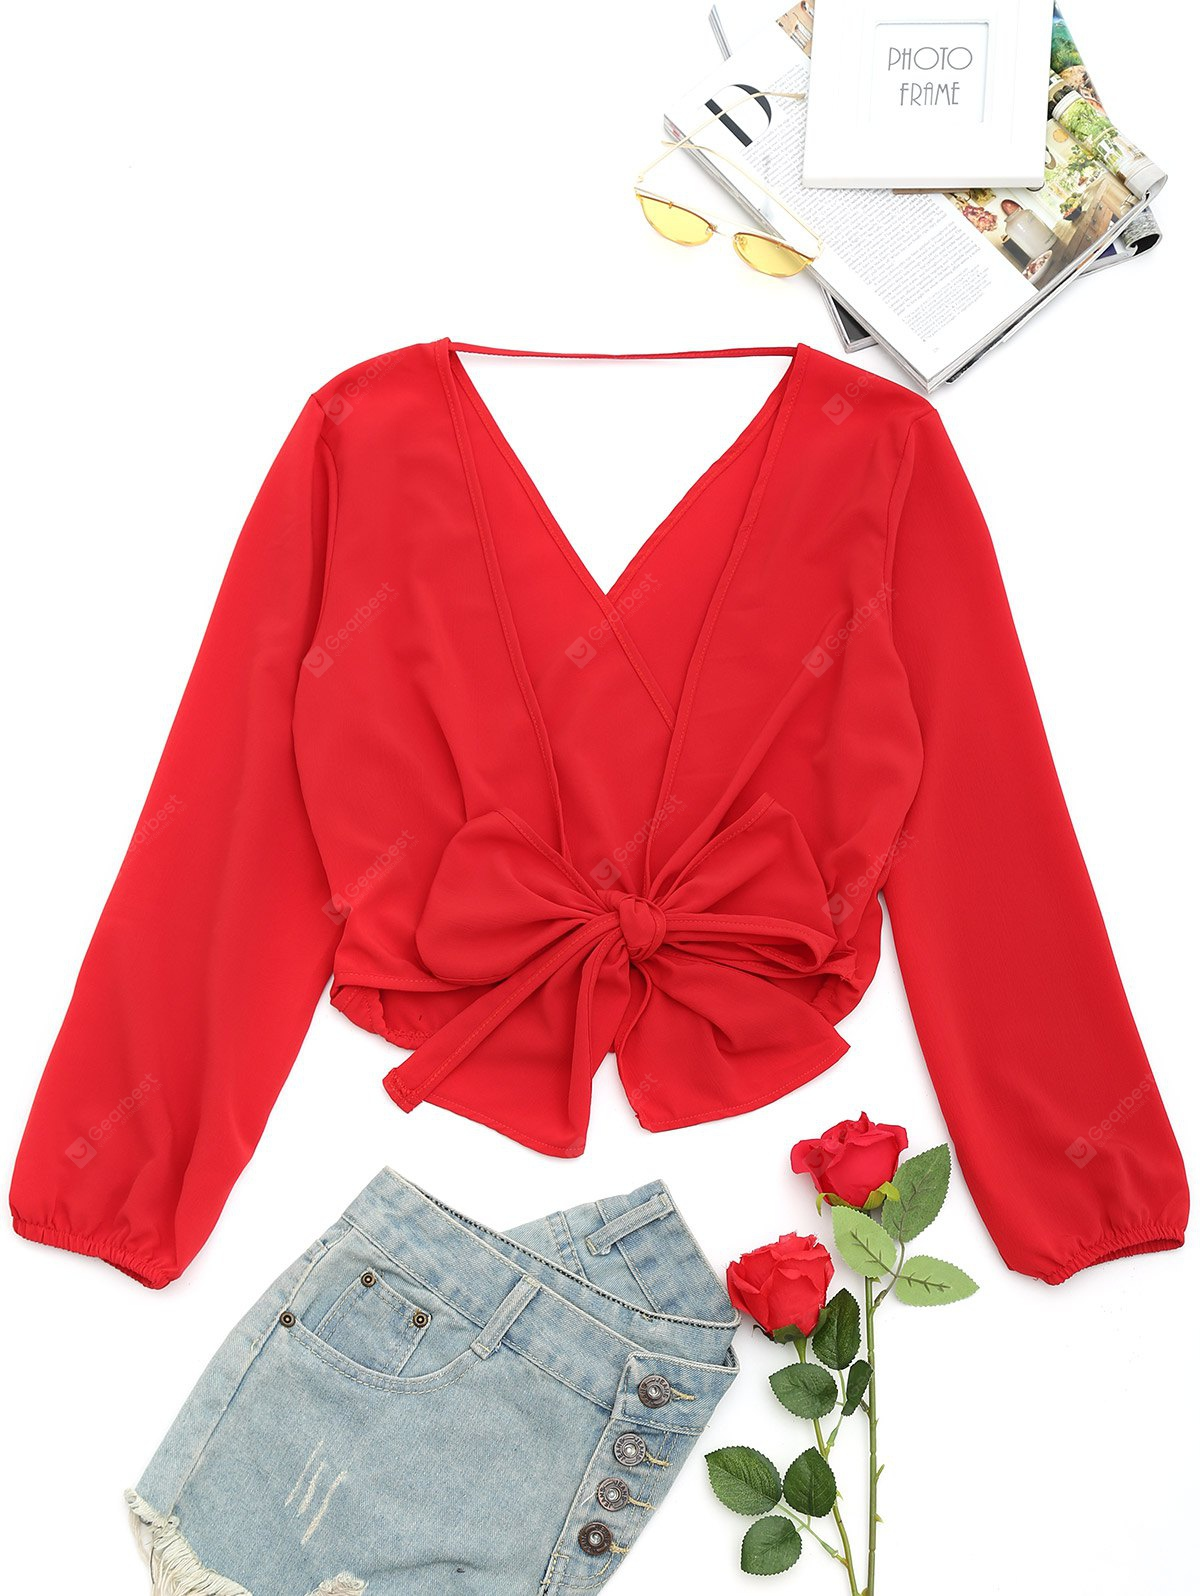 DEEP RED, Apparel, Women's Clothing, Blouses